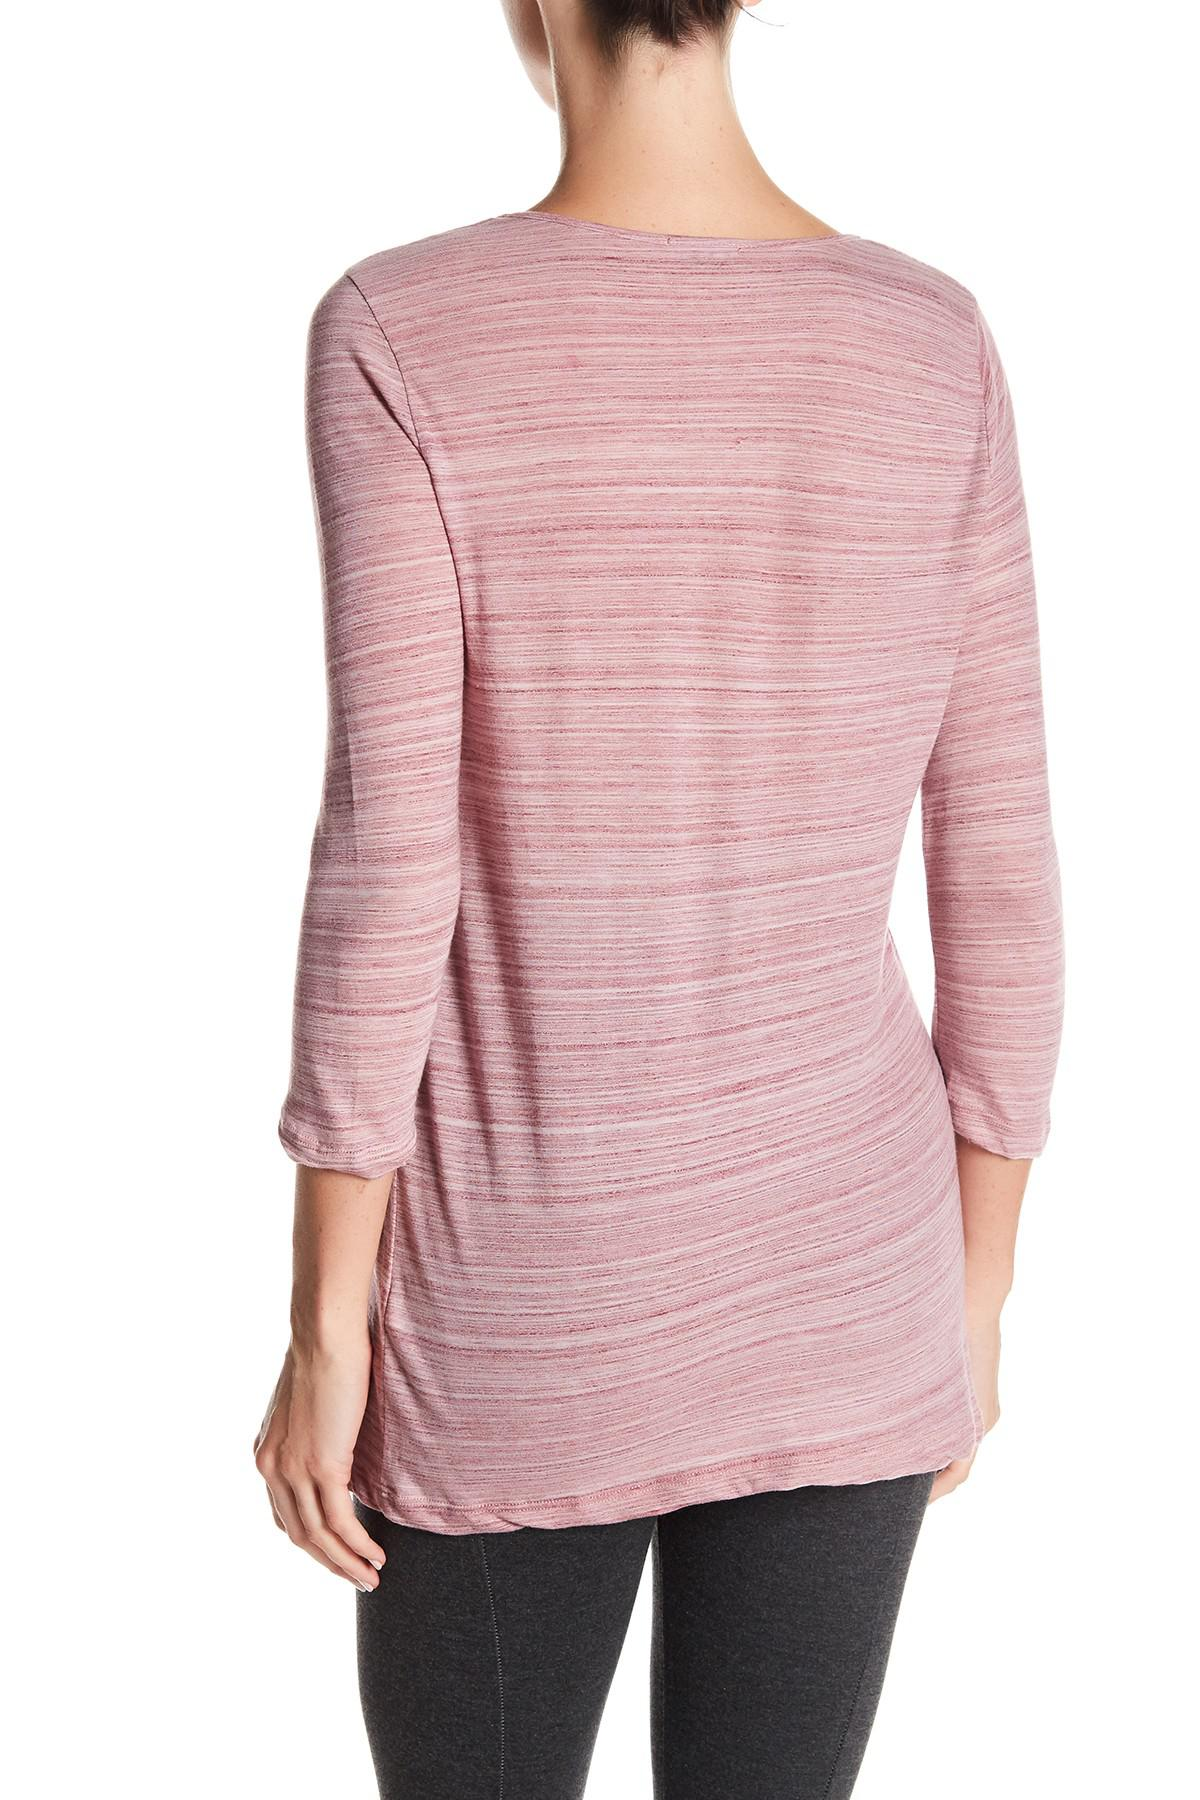 Lyst three dots deep v neck tee shirt in pink for Three dots t shirts